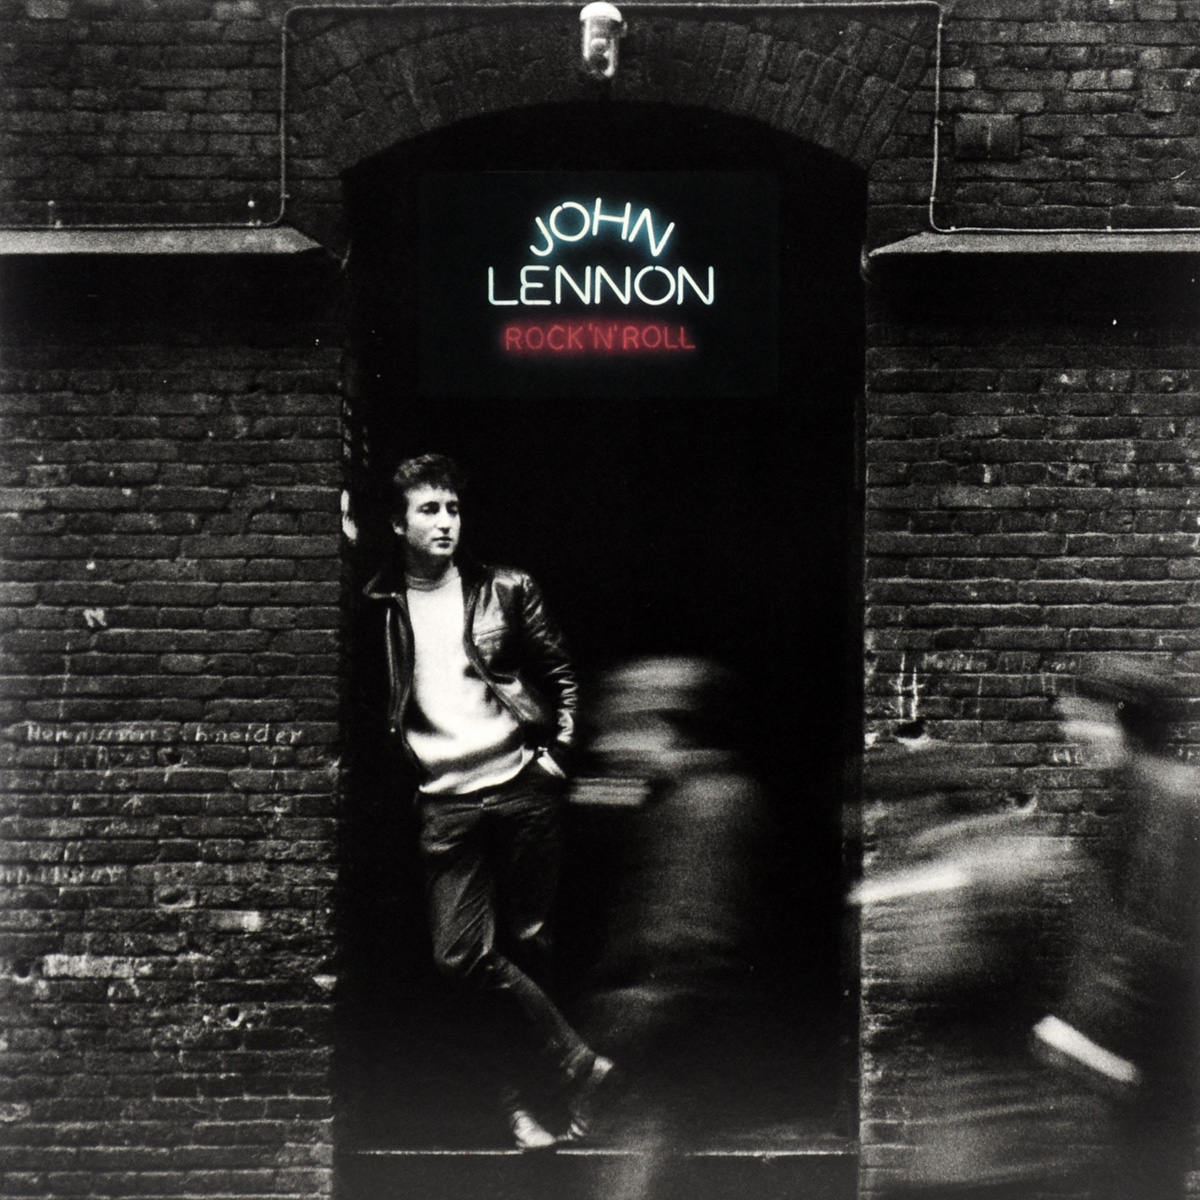 Джон Леннон John Lennon. Rock 'N' Roll (LP) виниловая пластинка john lennon rock n roll